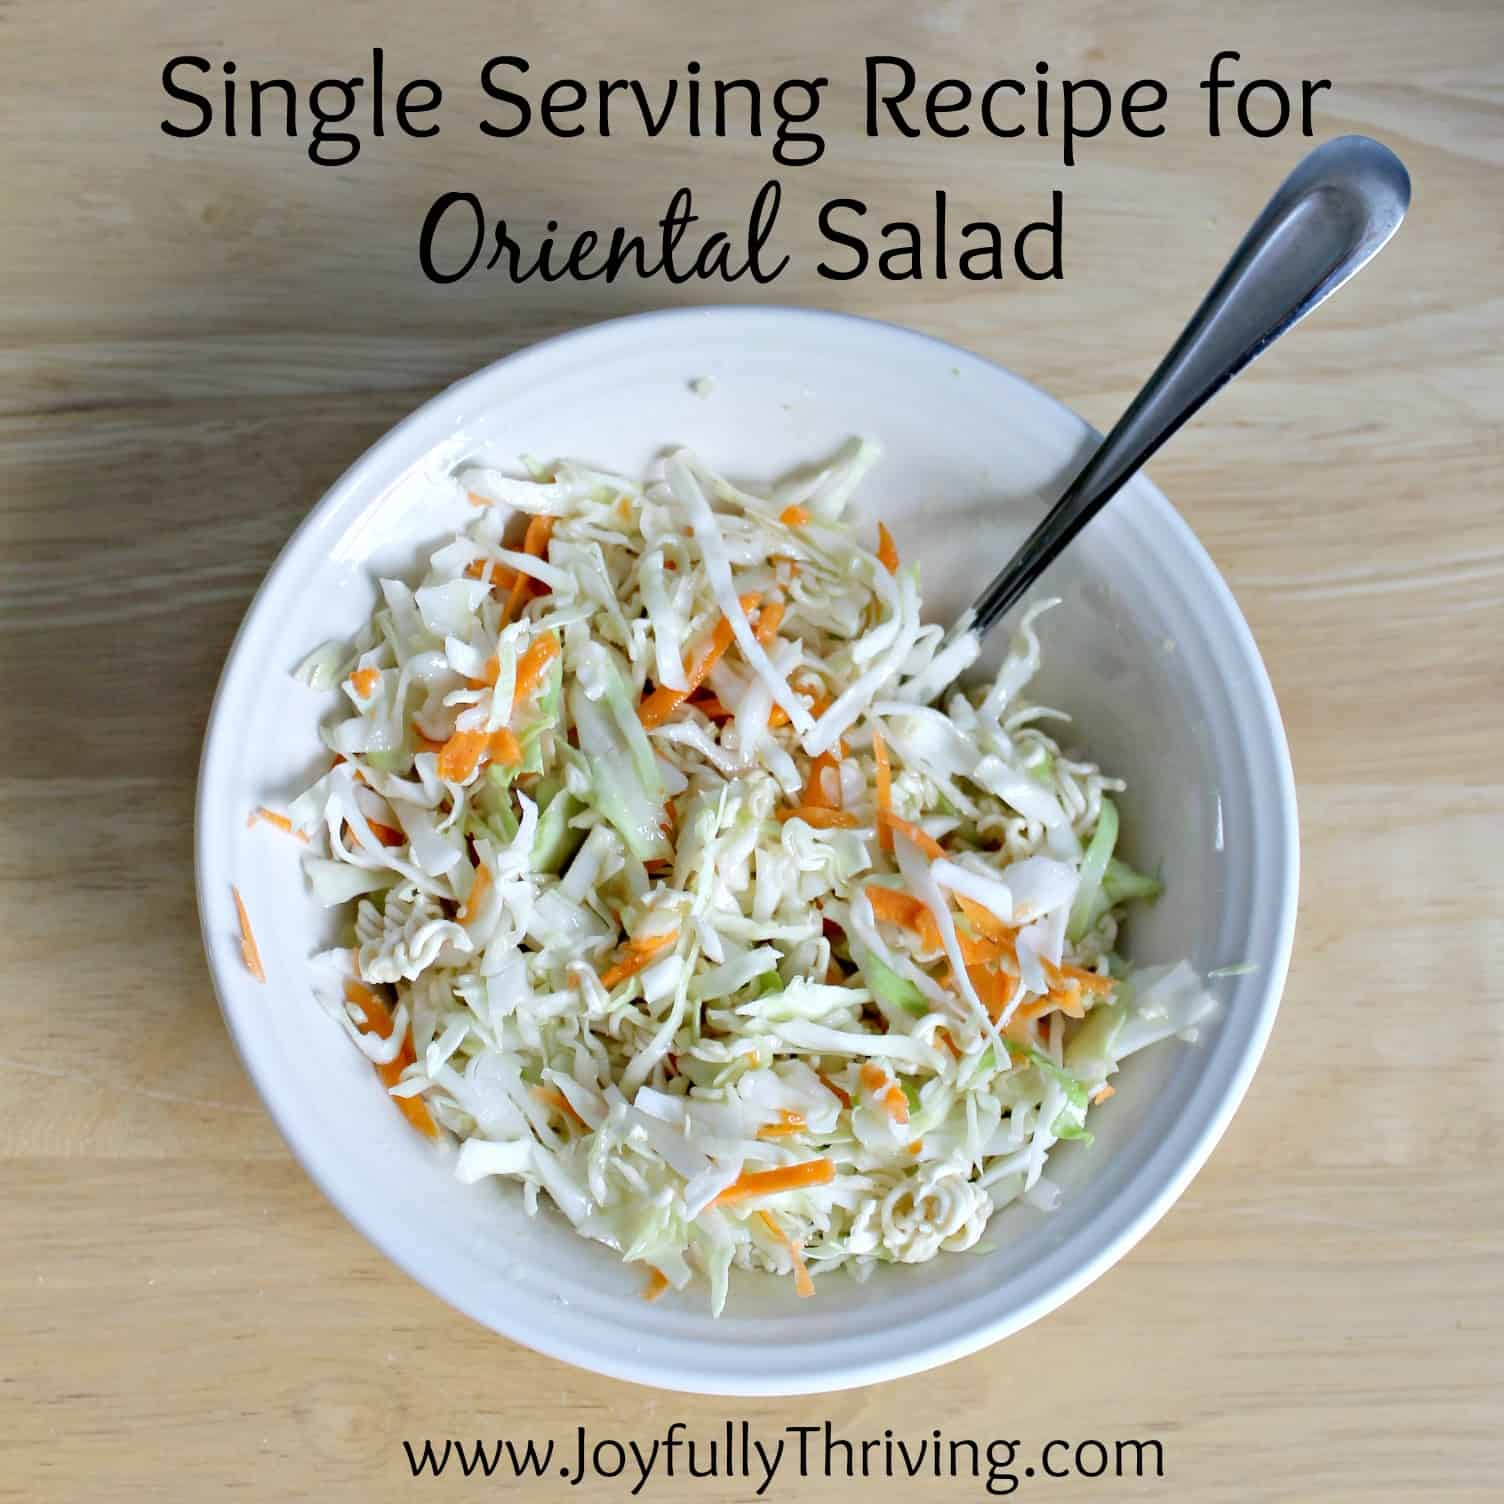 I love oriental salad but it gets soggy so quickly! Once I discovered this simple way to make a single serving of oriental salad, I haven't made it another way. Simple but brilliant!